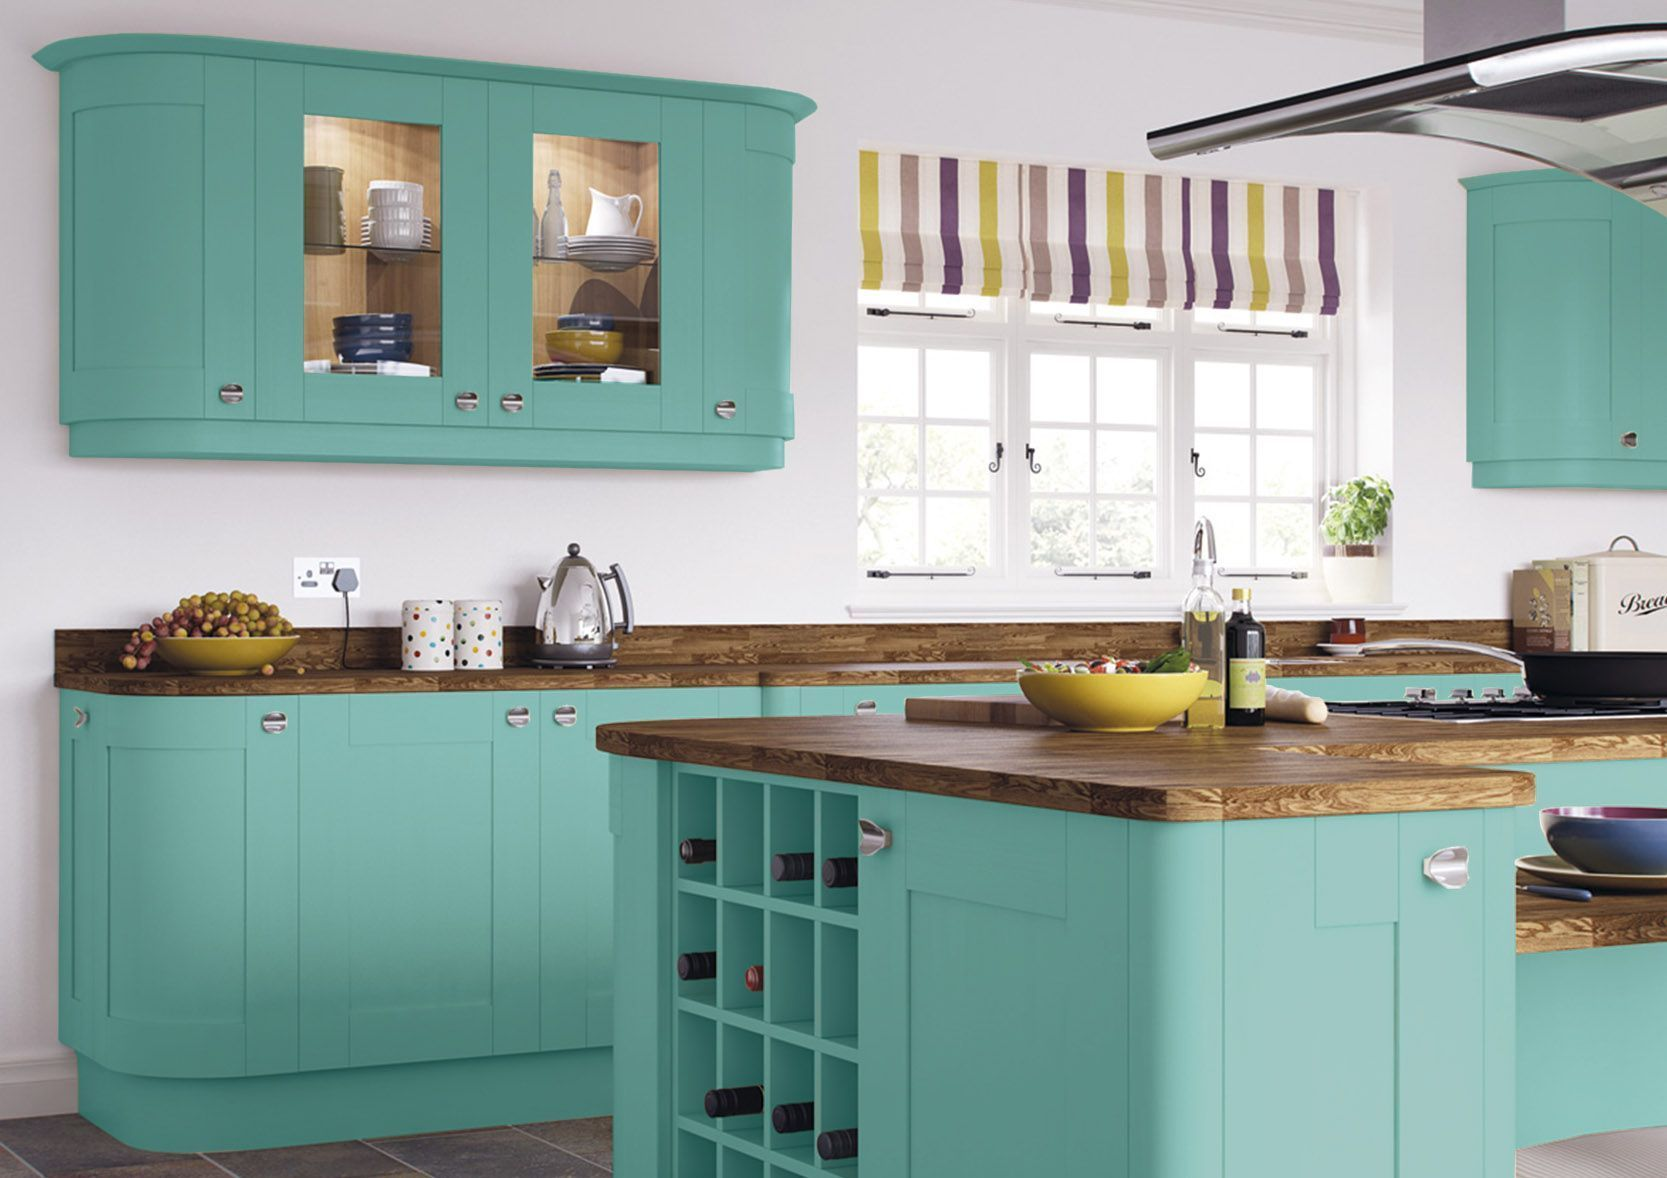 Ballroom Blue Roma Shaker Painted Kitchen Cupboard Doors At Kitchen Warehouse Uk Fast Uk Delivery Browse Kitchen Cabinets Green Country Kitchen Kitchen Decor